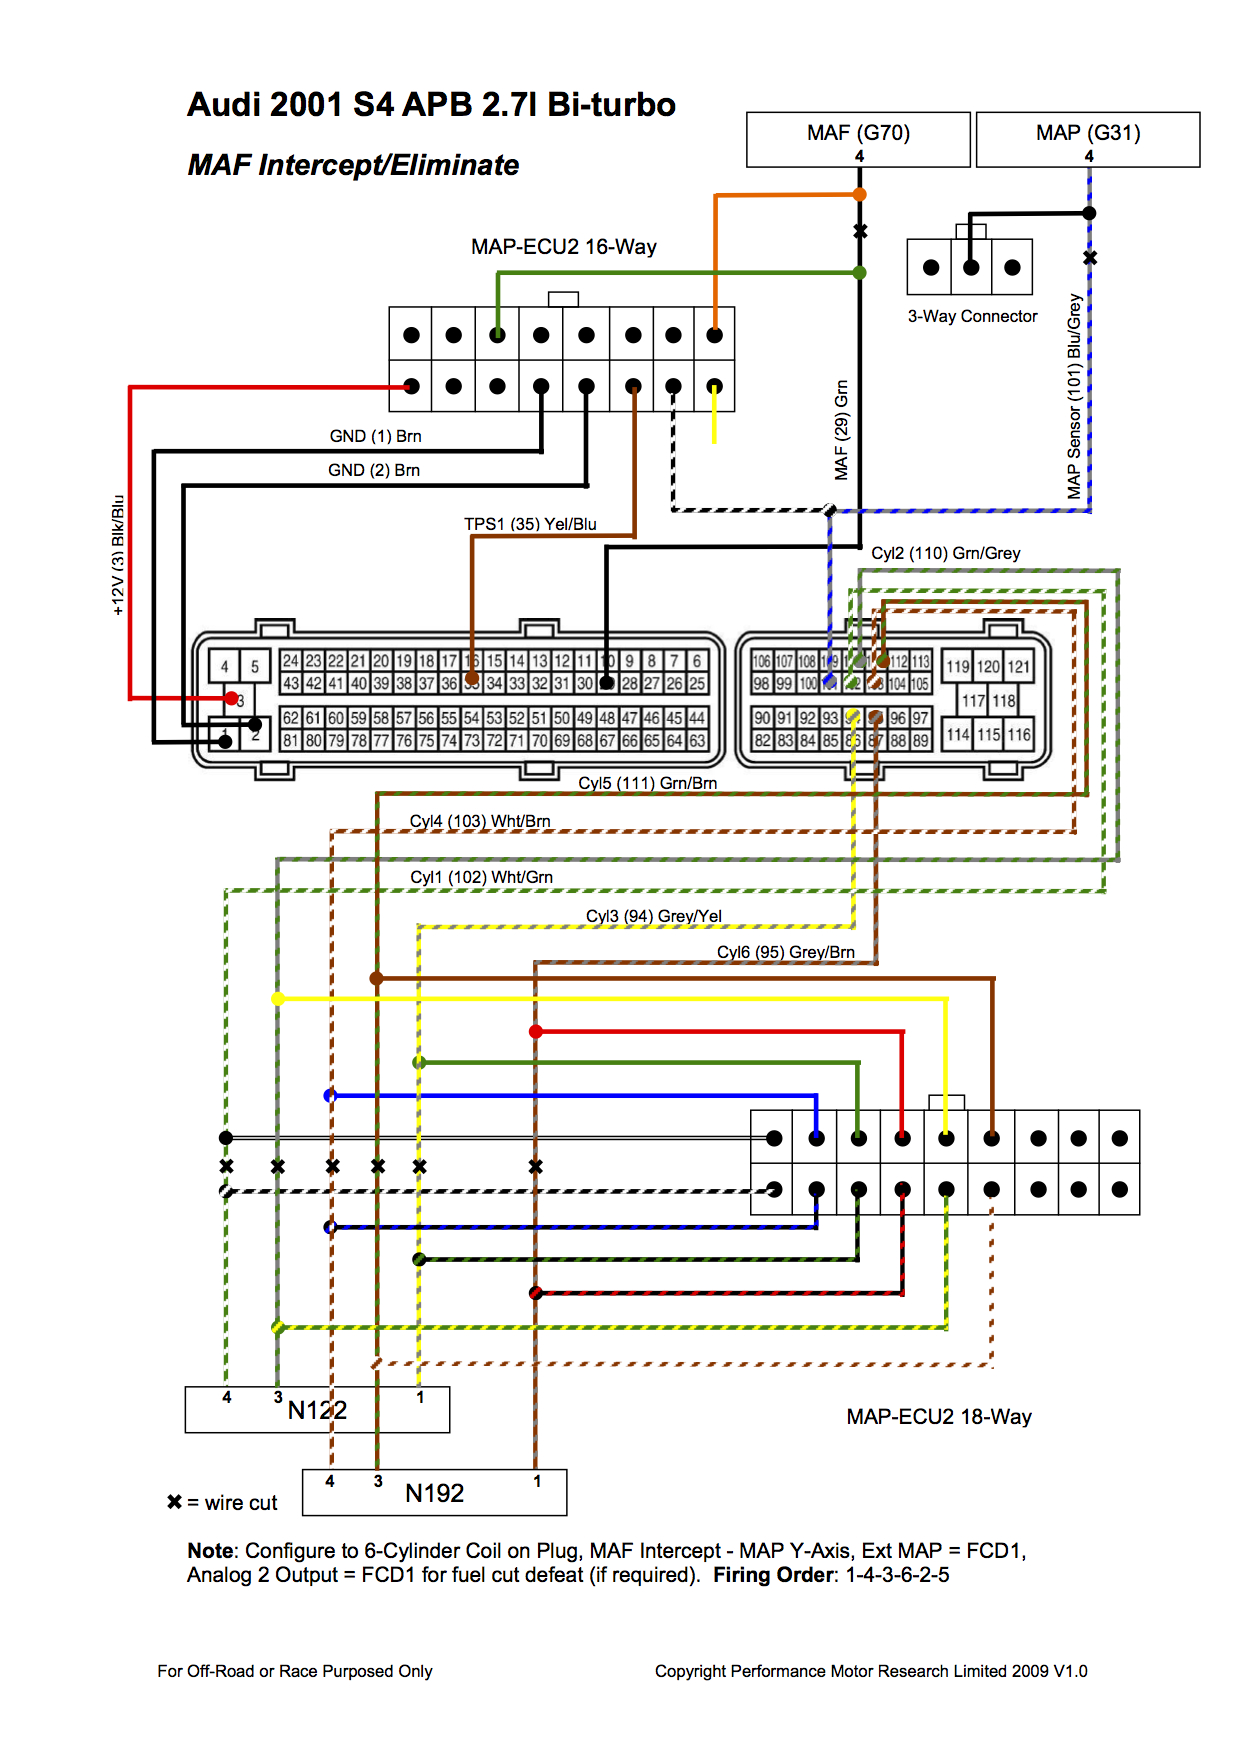 Audi S4 20011 ecu wiring diagram mini cooper ecu wiring diagram \u2022 wiring 2009 toyota camry wiring diagram at honlapkeszites.co